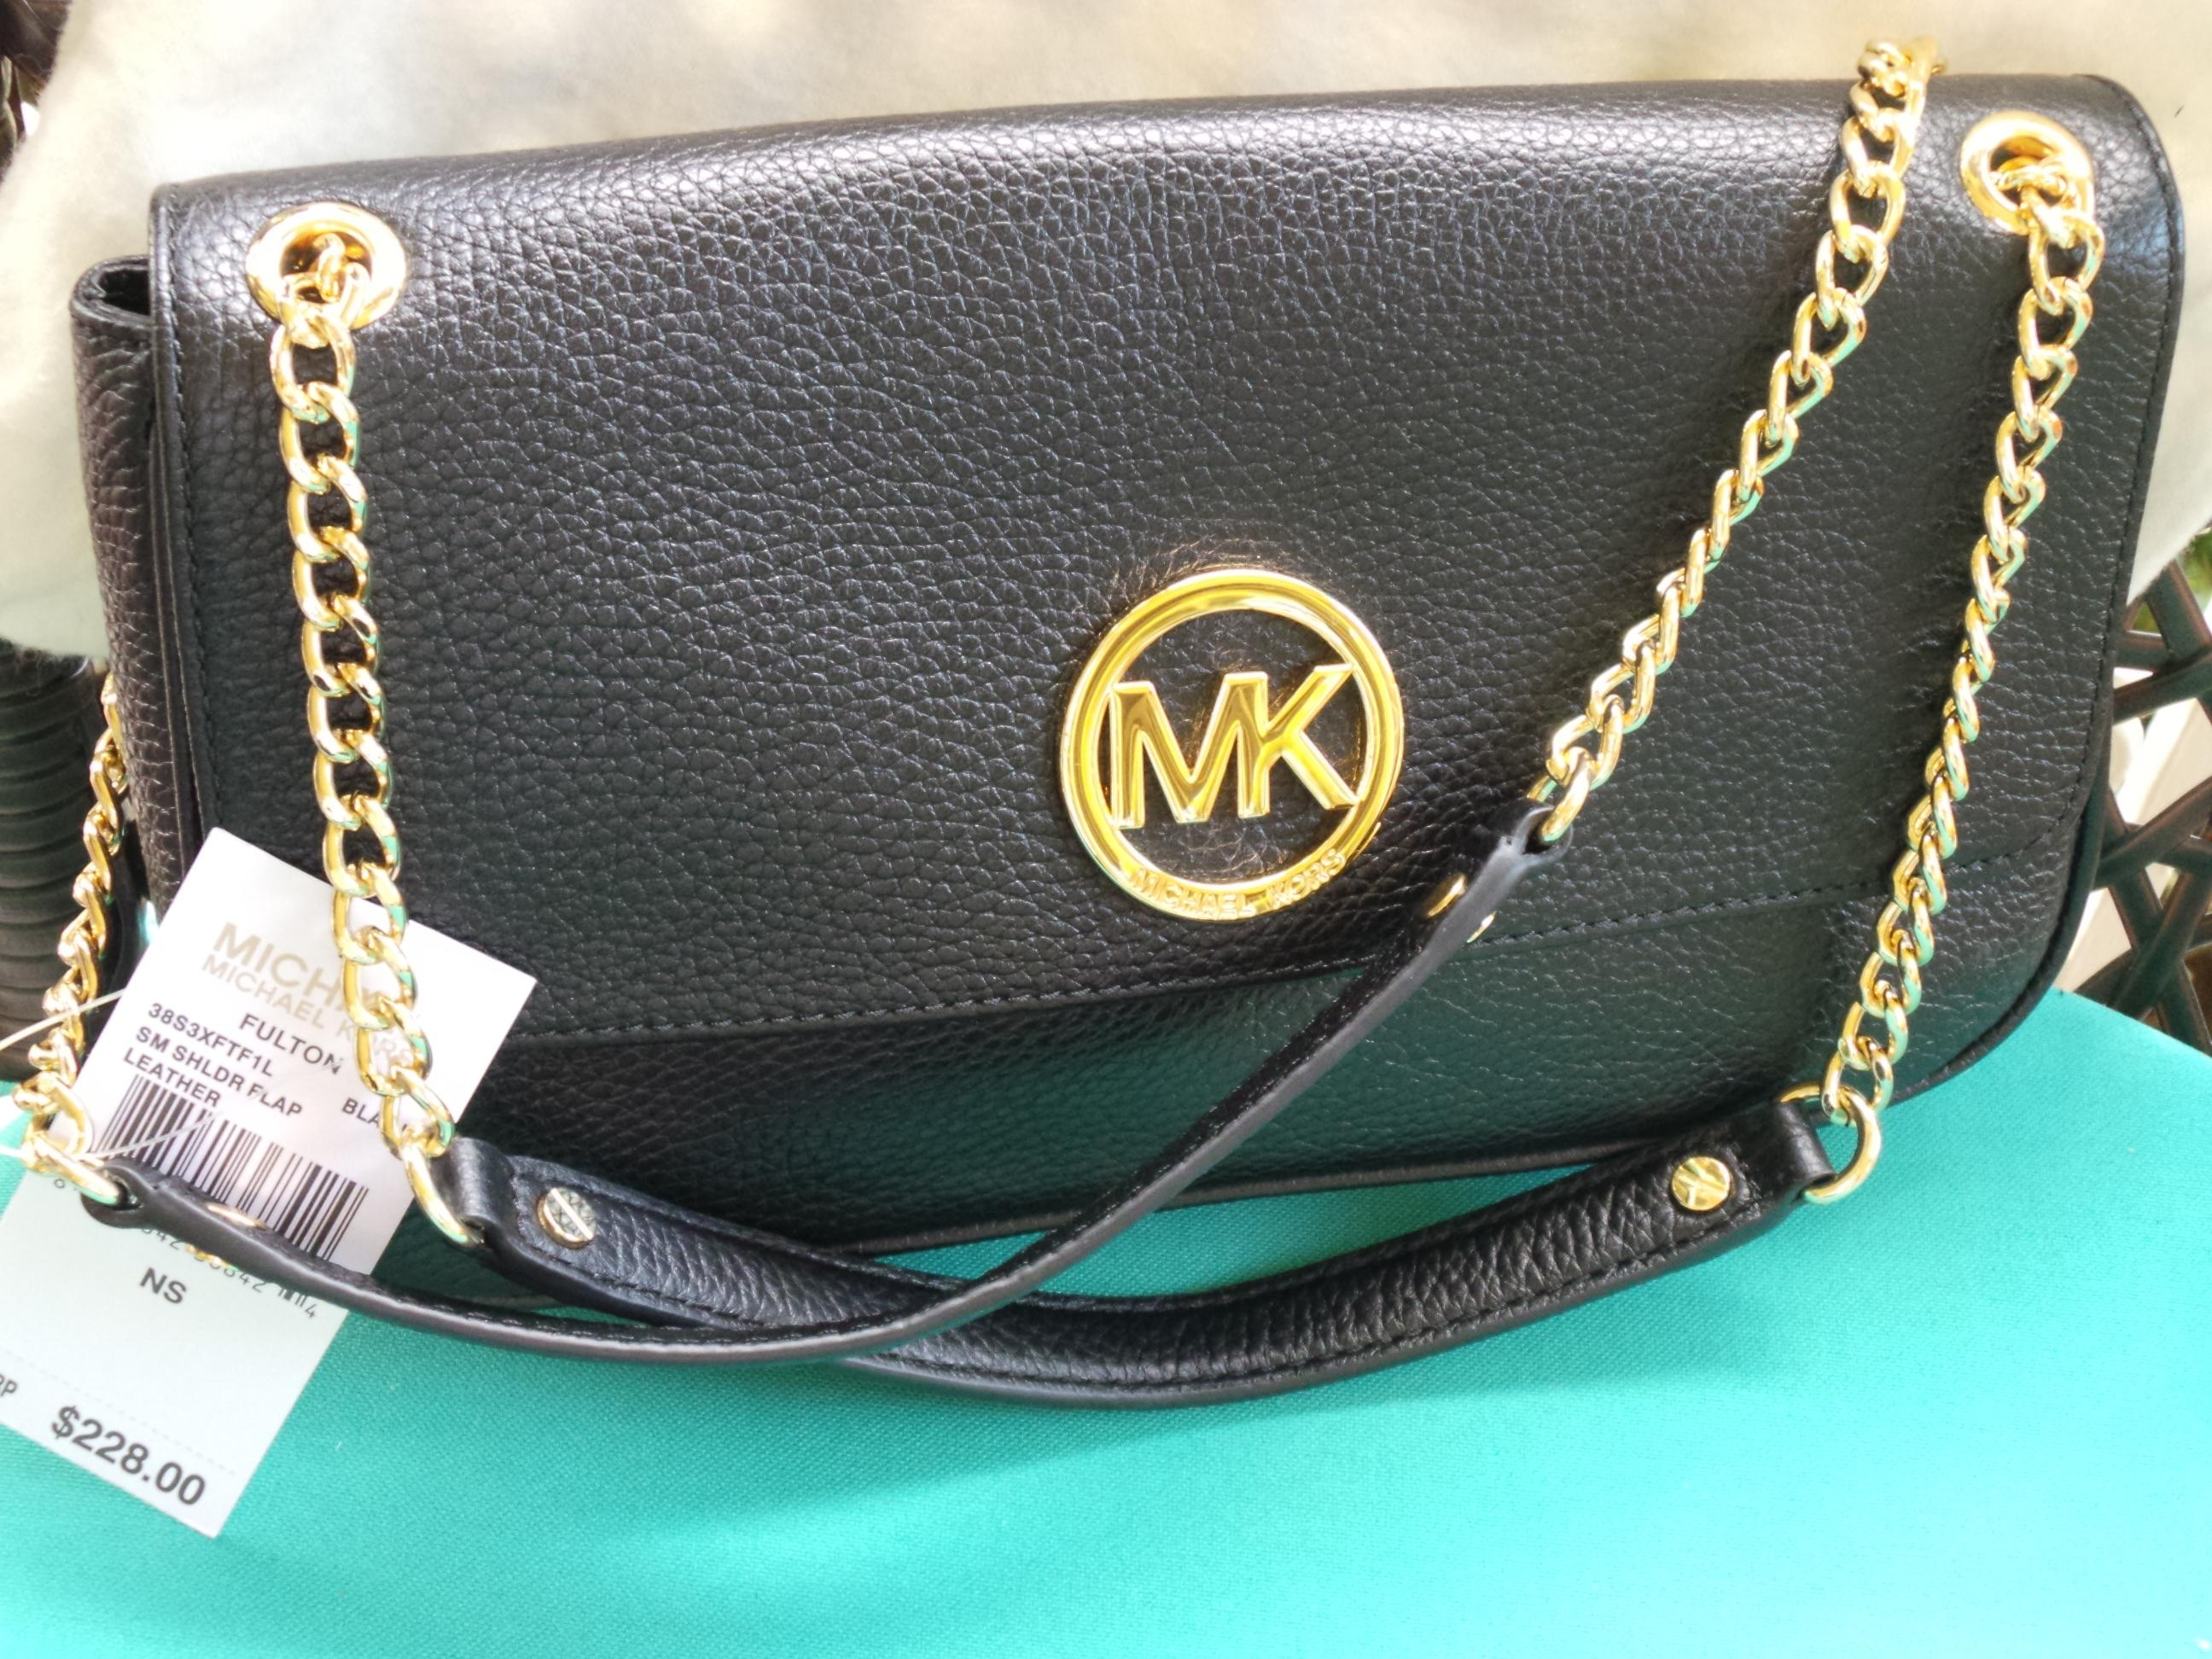 ... sale michael michael kors mmk fulton beautiful black pebbled leather  shoulder bag tradesy 08235 f0101 681a7760dab4a